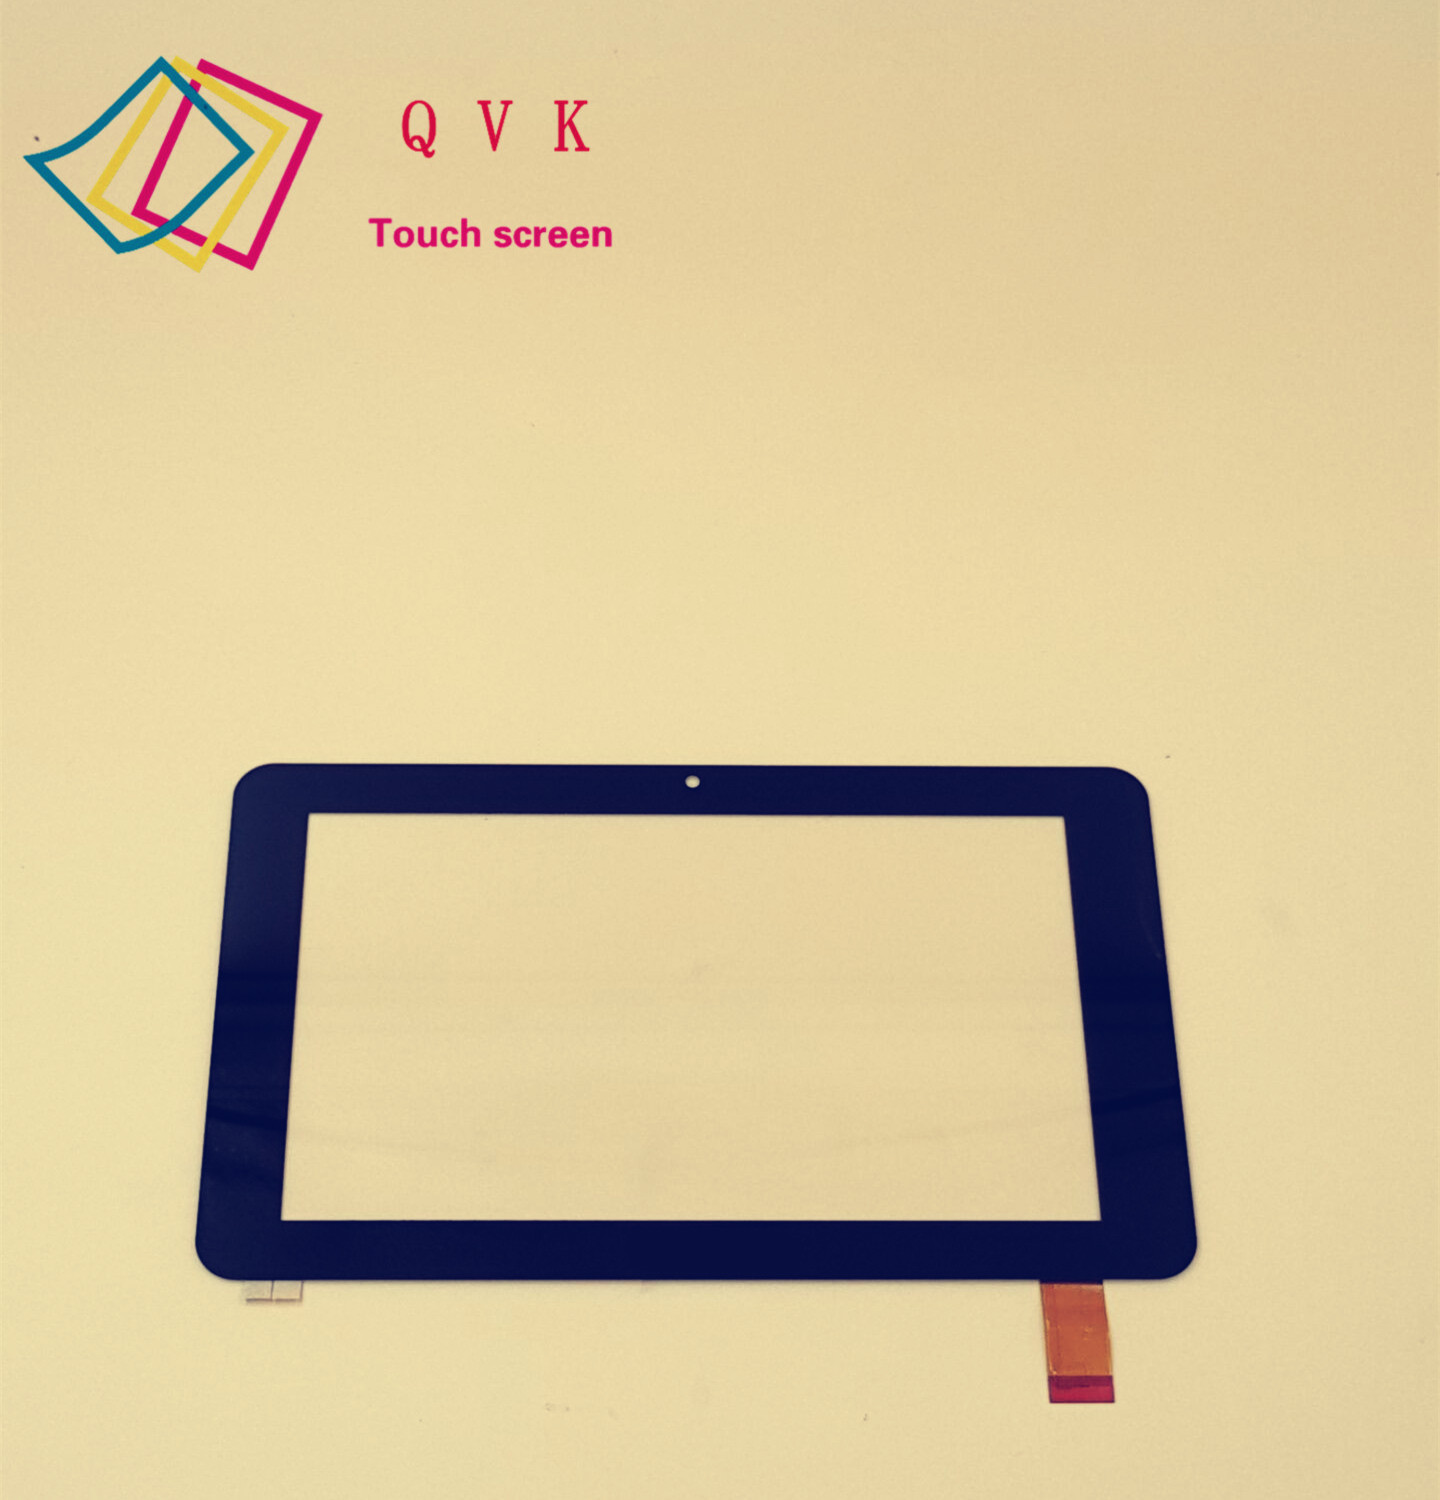 Kurio 7inch tablet capacitive touch screen and external screen 20130610B noting size and color